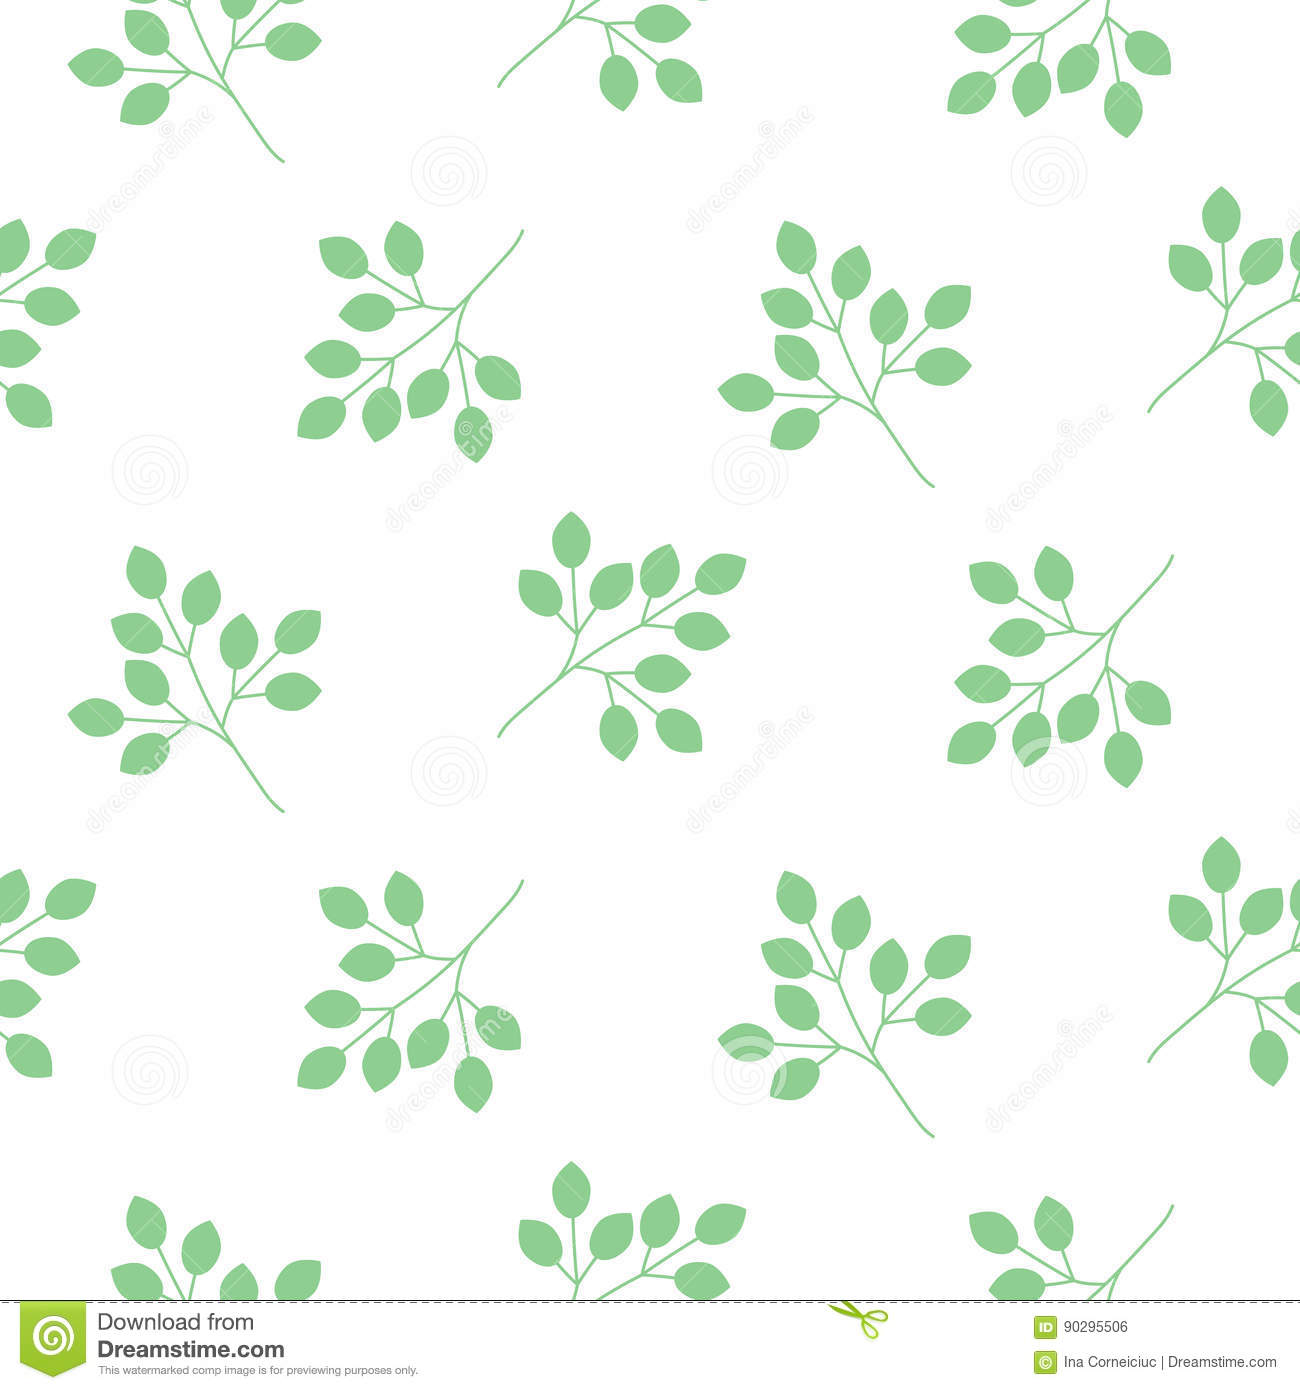 Small Leaves Seamless Vector Pattern